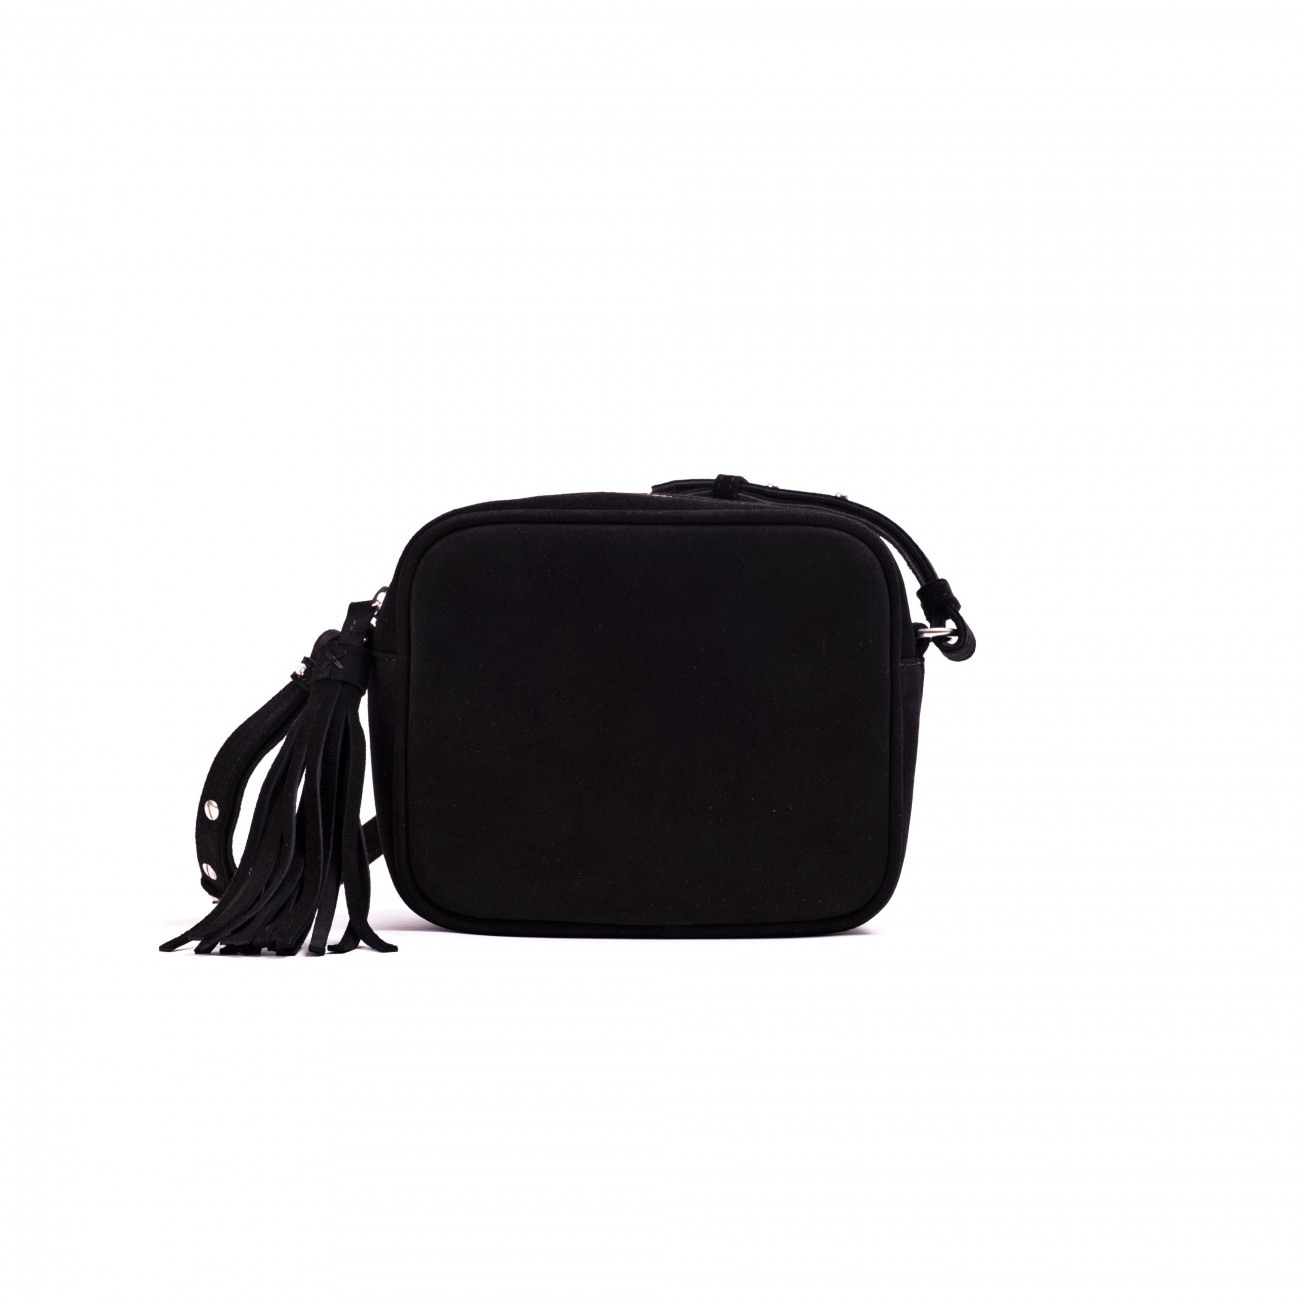 Sophie bag black